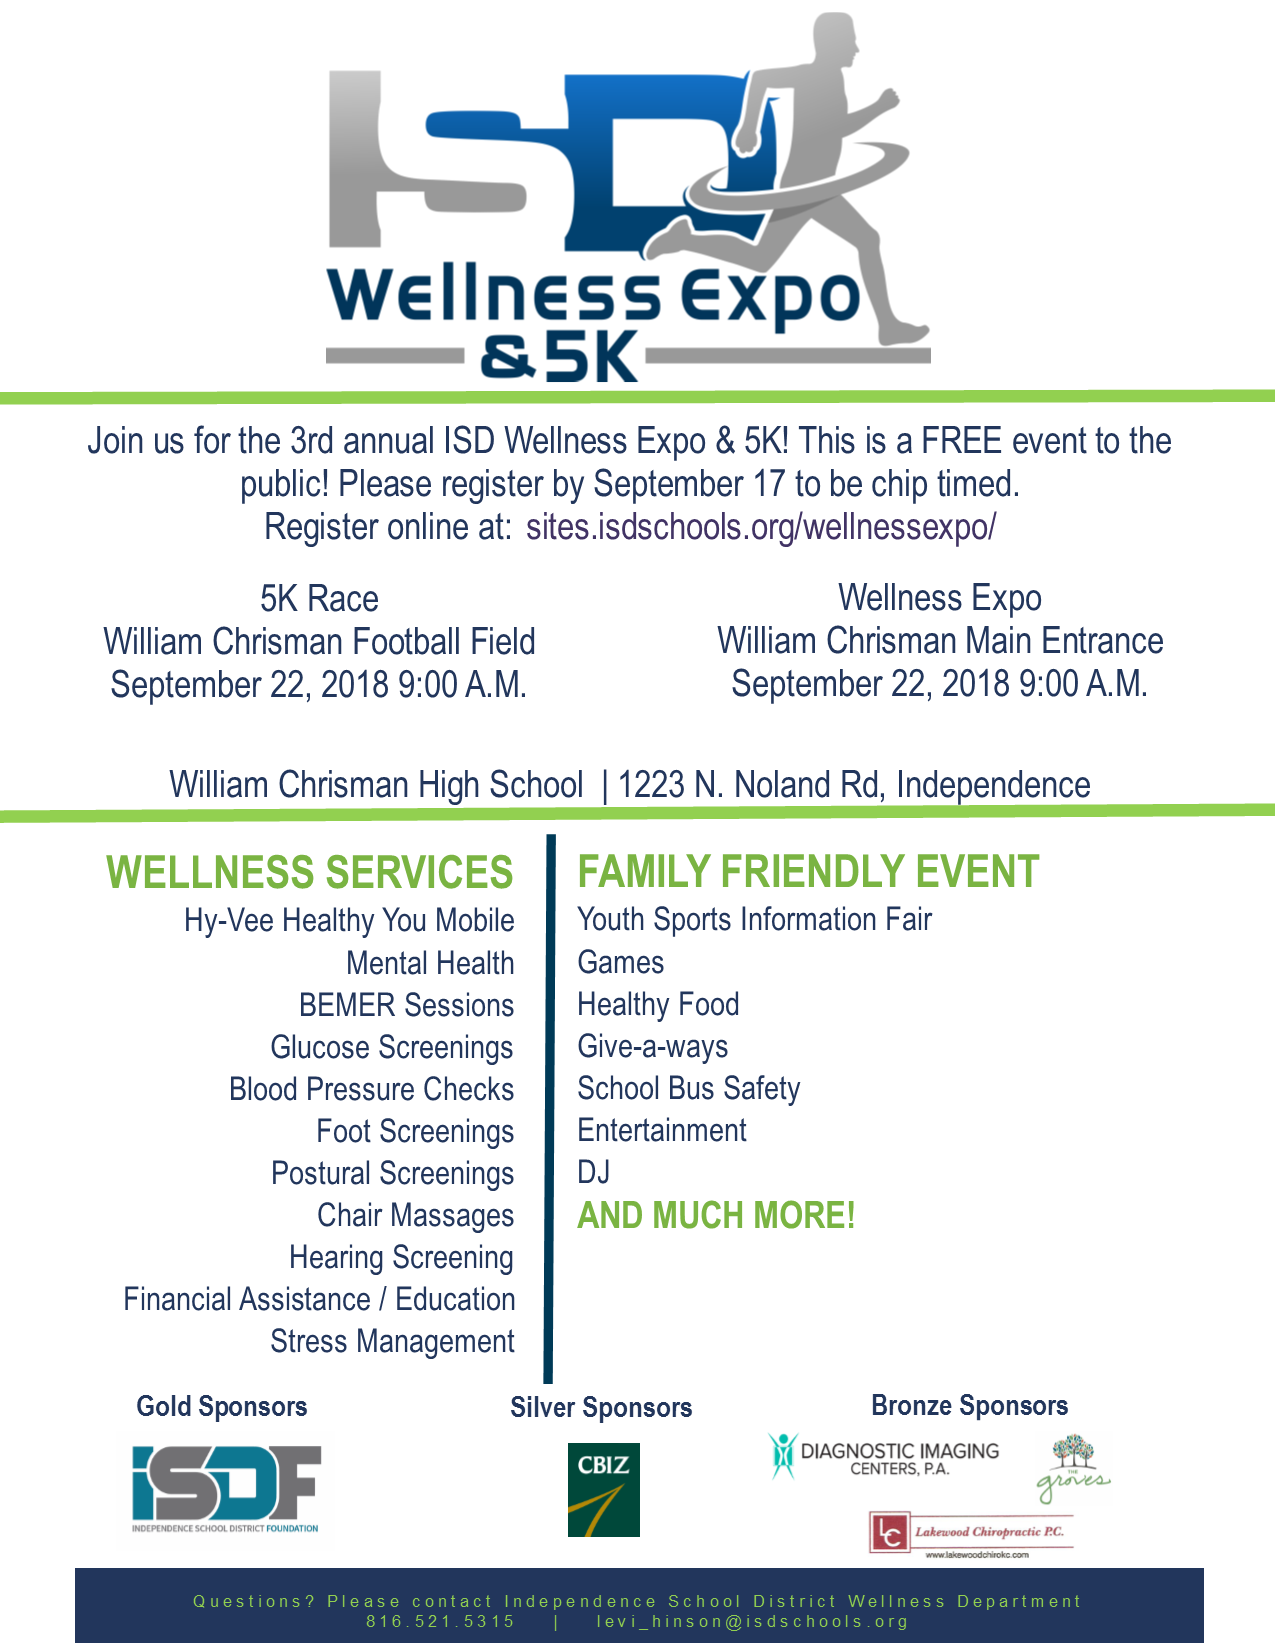 Wellness Expo & 5K 8.5 by 11 Flyer (1)